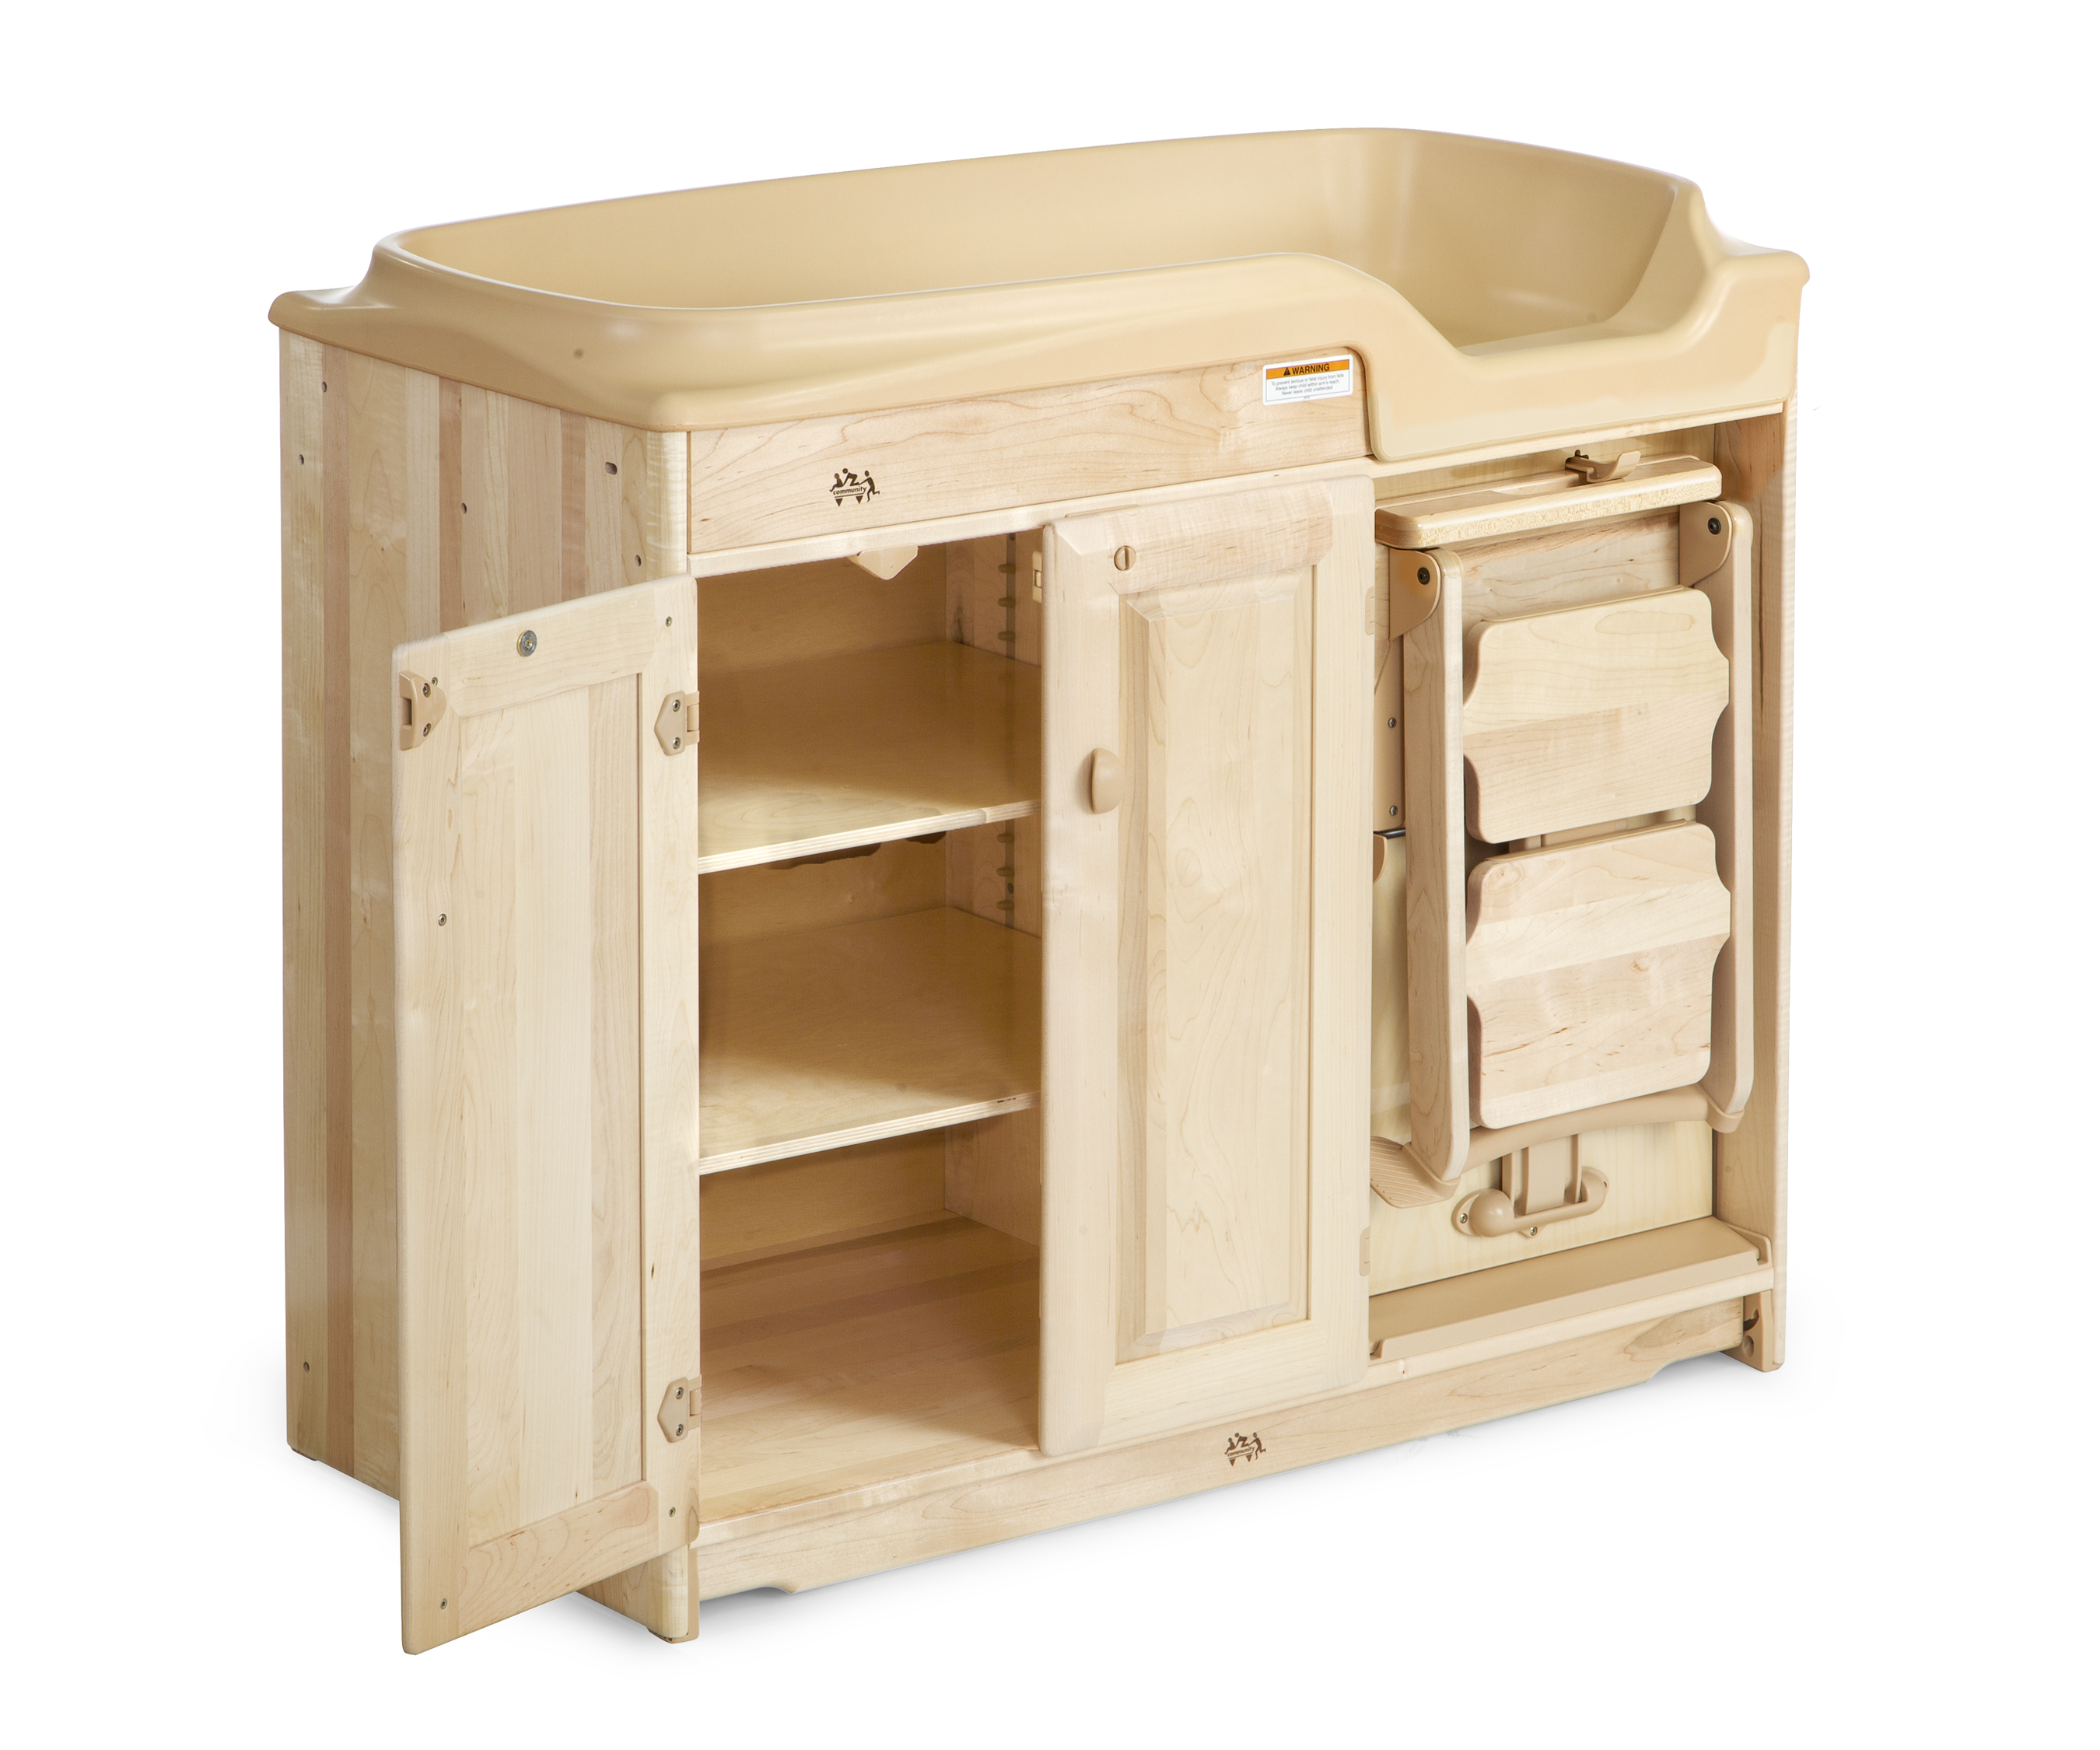 Image of: Changing Table With Steps And 6 Pan